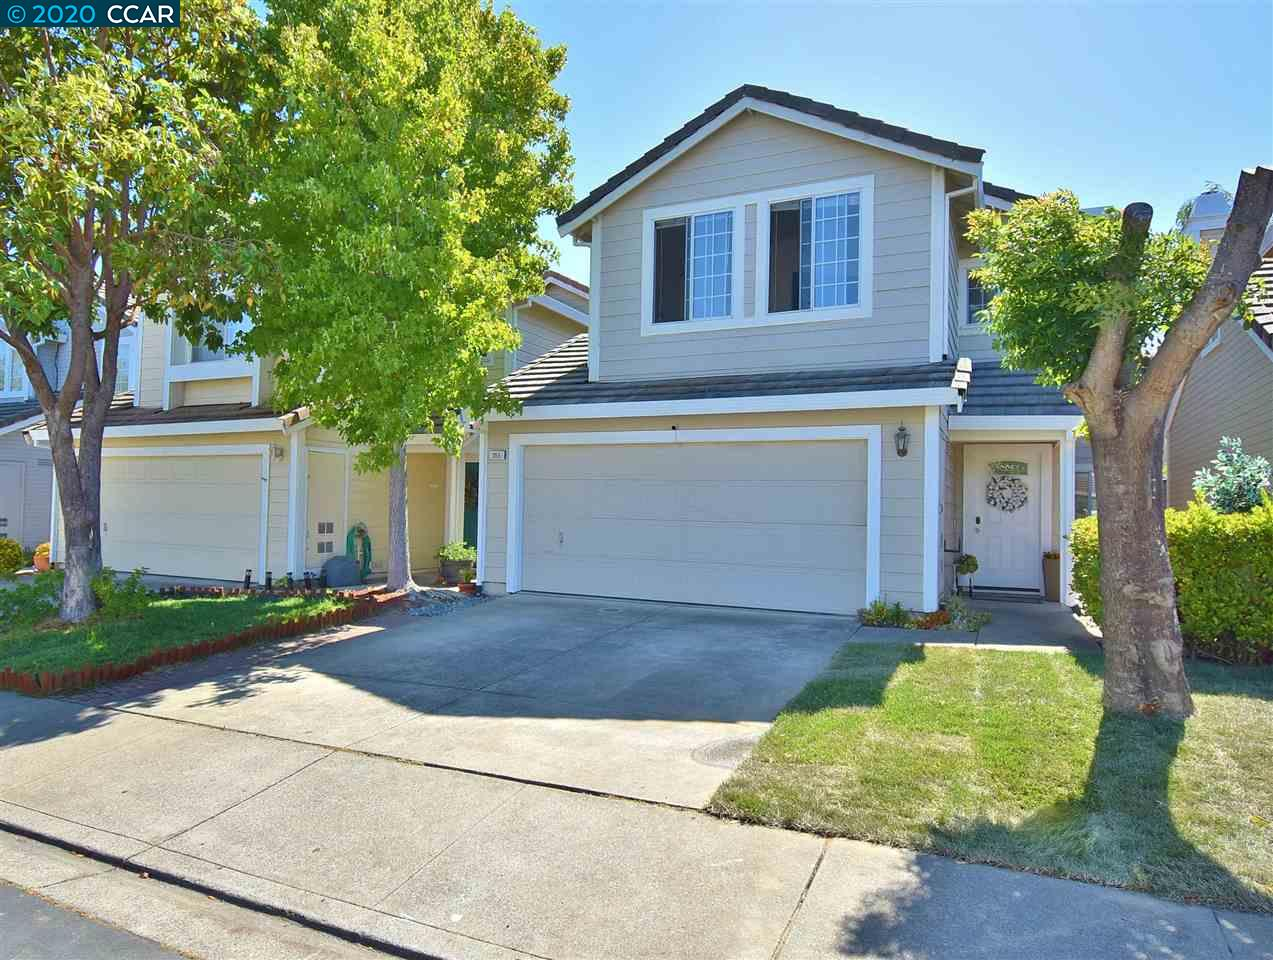 355 Wildrose Cir Pinole, CA 94564